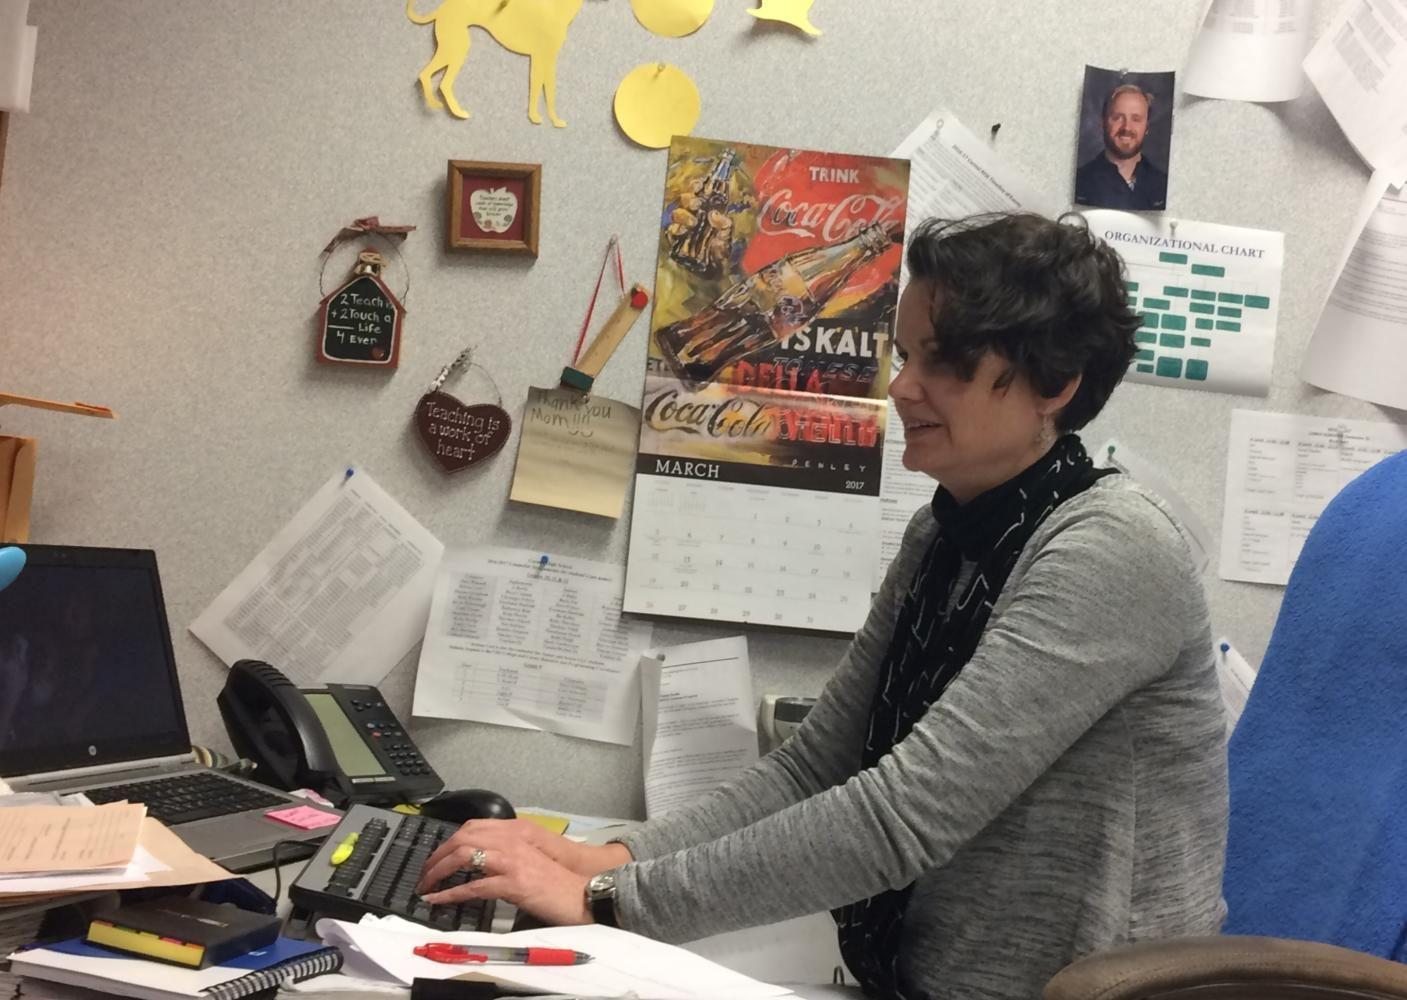 Math+department+chair+Jacinda+Sohalski+quietly+works+at+her+desk.+For+the+past+few+weeks%2C+she+has+been+working+actively+to+rework+the+curriculum+around+the+new+textbooks.+